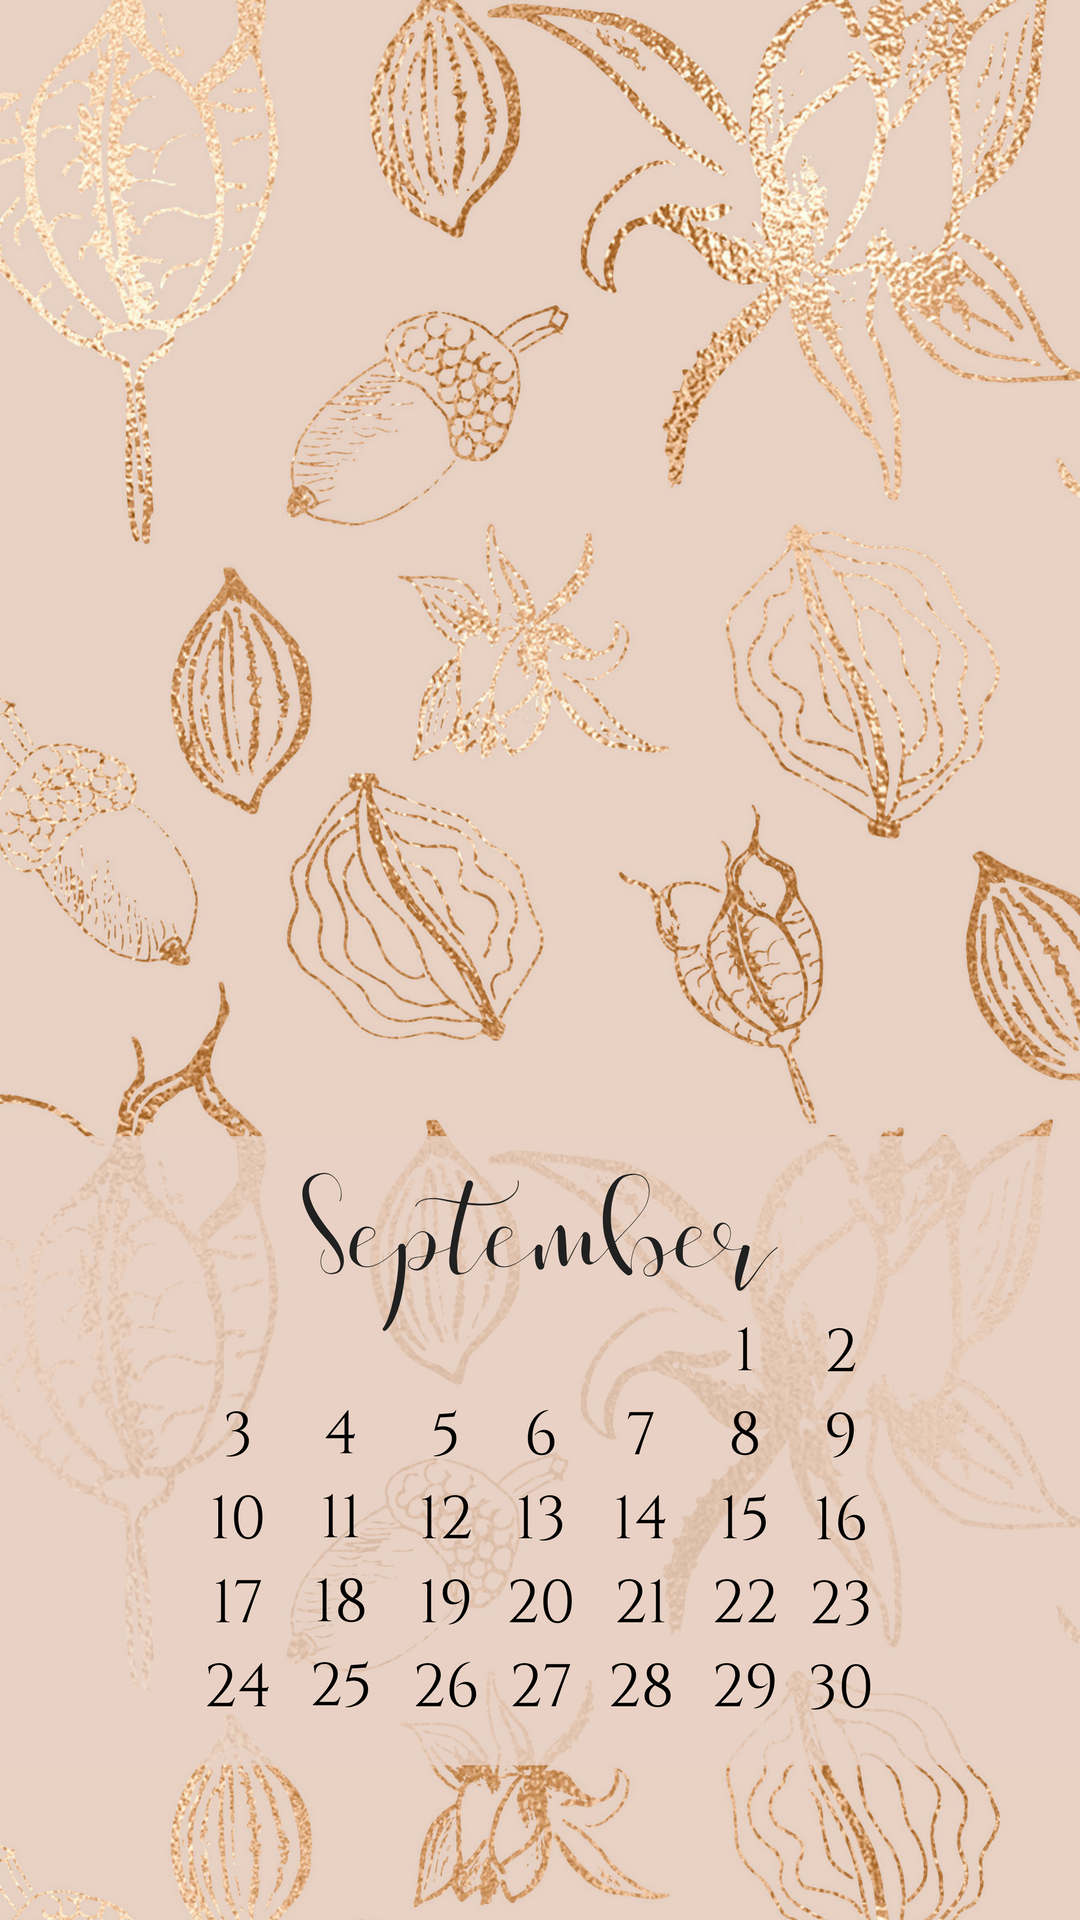 Click To Download September Foil Calendar   Wallpaper 453665 1080x1920